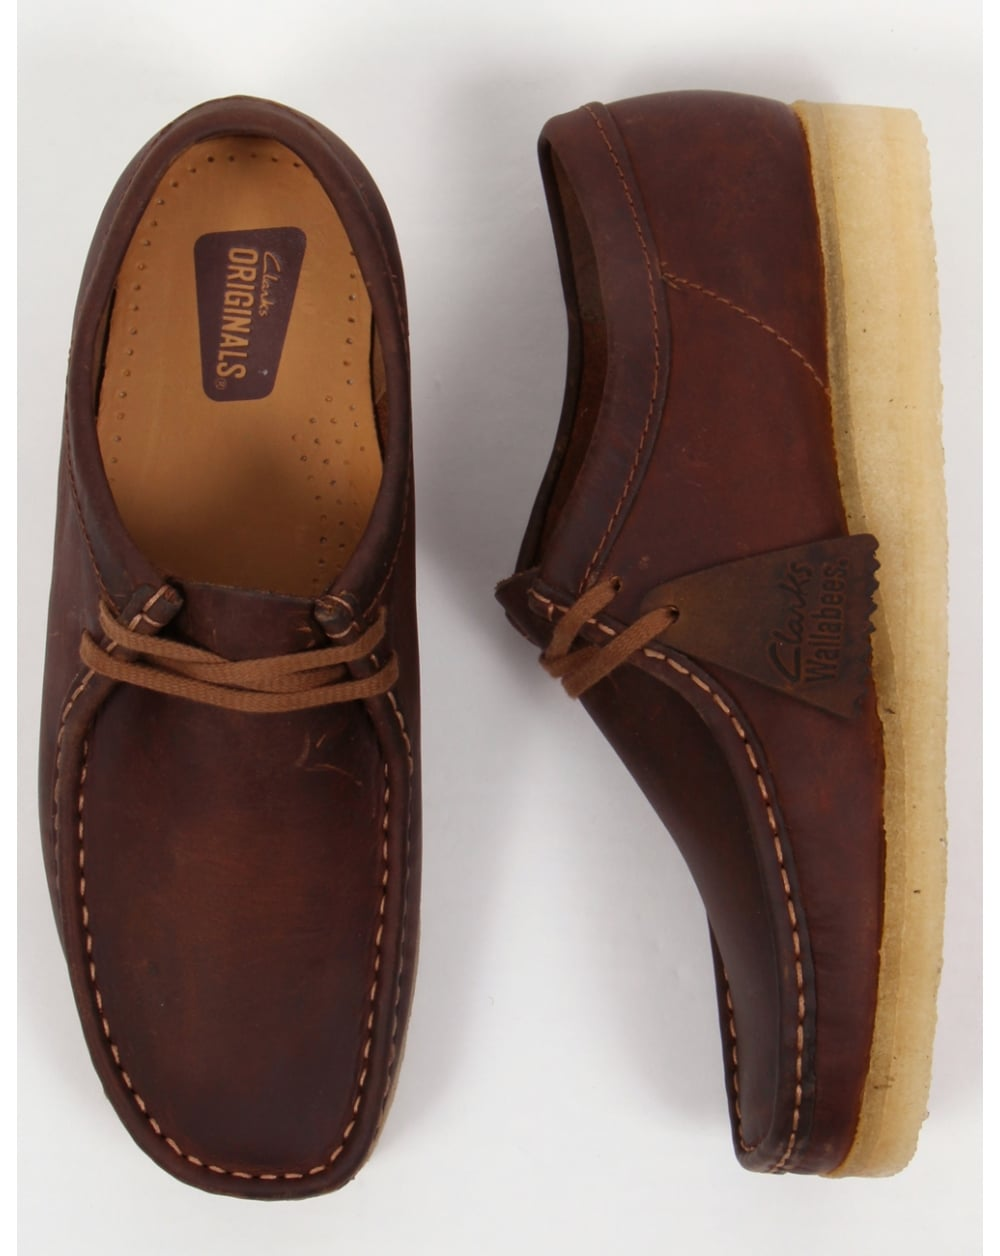 b523c71c22f Clarks Originals Wallabee Shoes Beeswax,ridge,leather